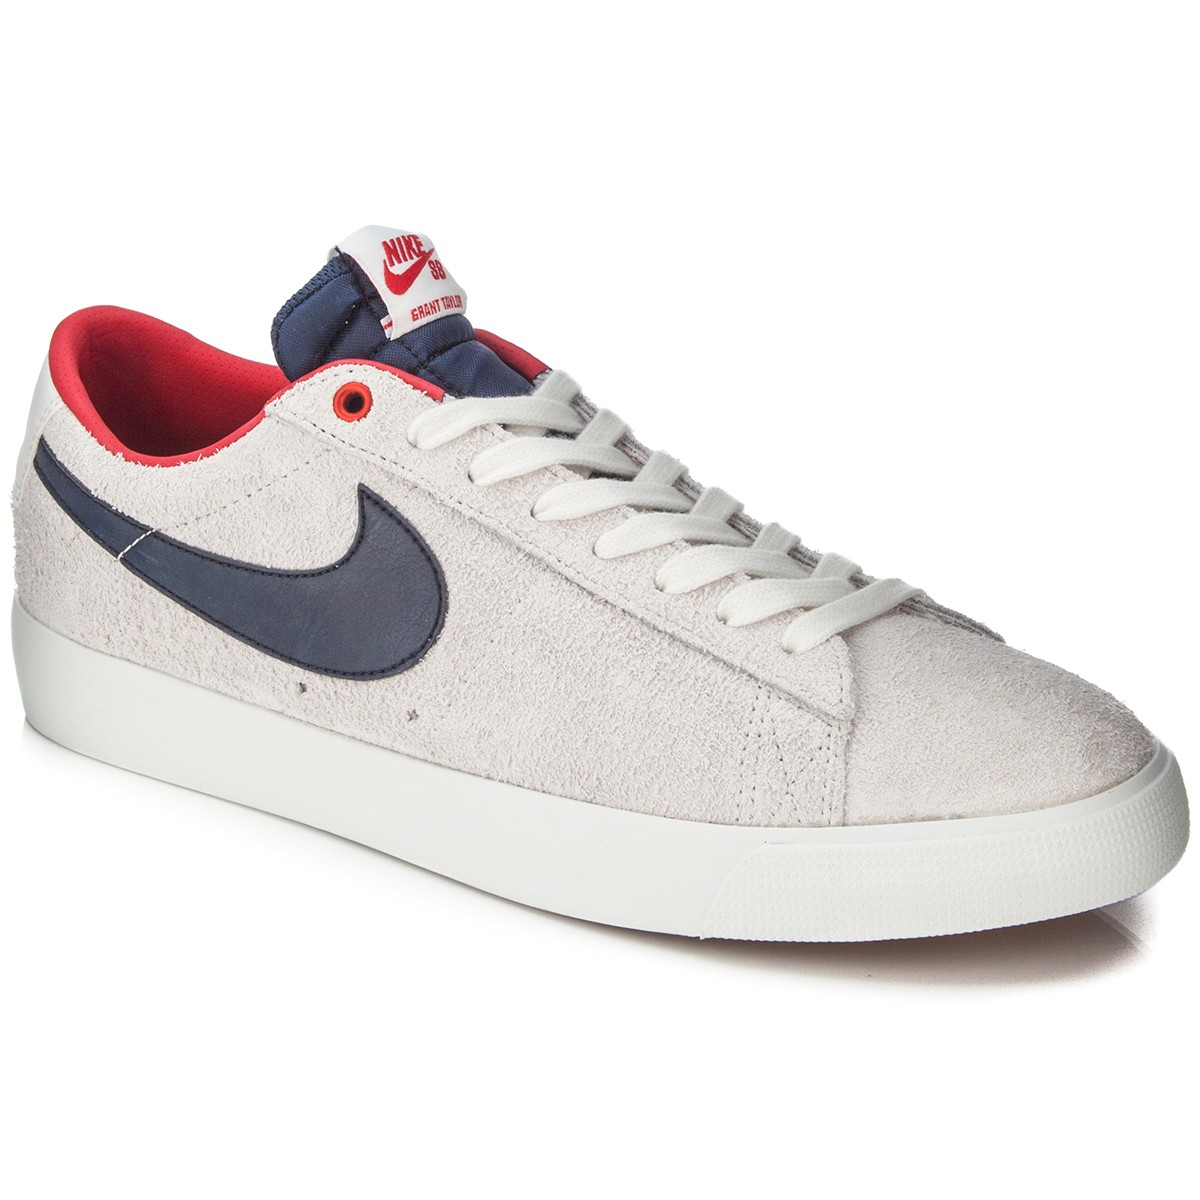 155bc8560f99 ... coupon code for nike blazer low gt qs shoes black sail f27a0 37f3b ...